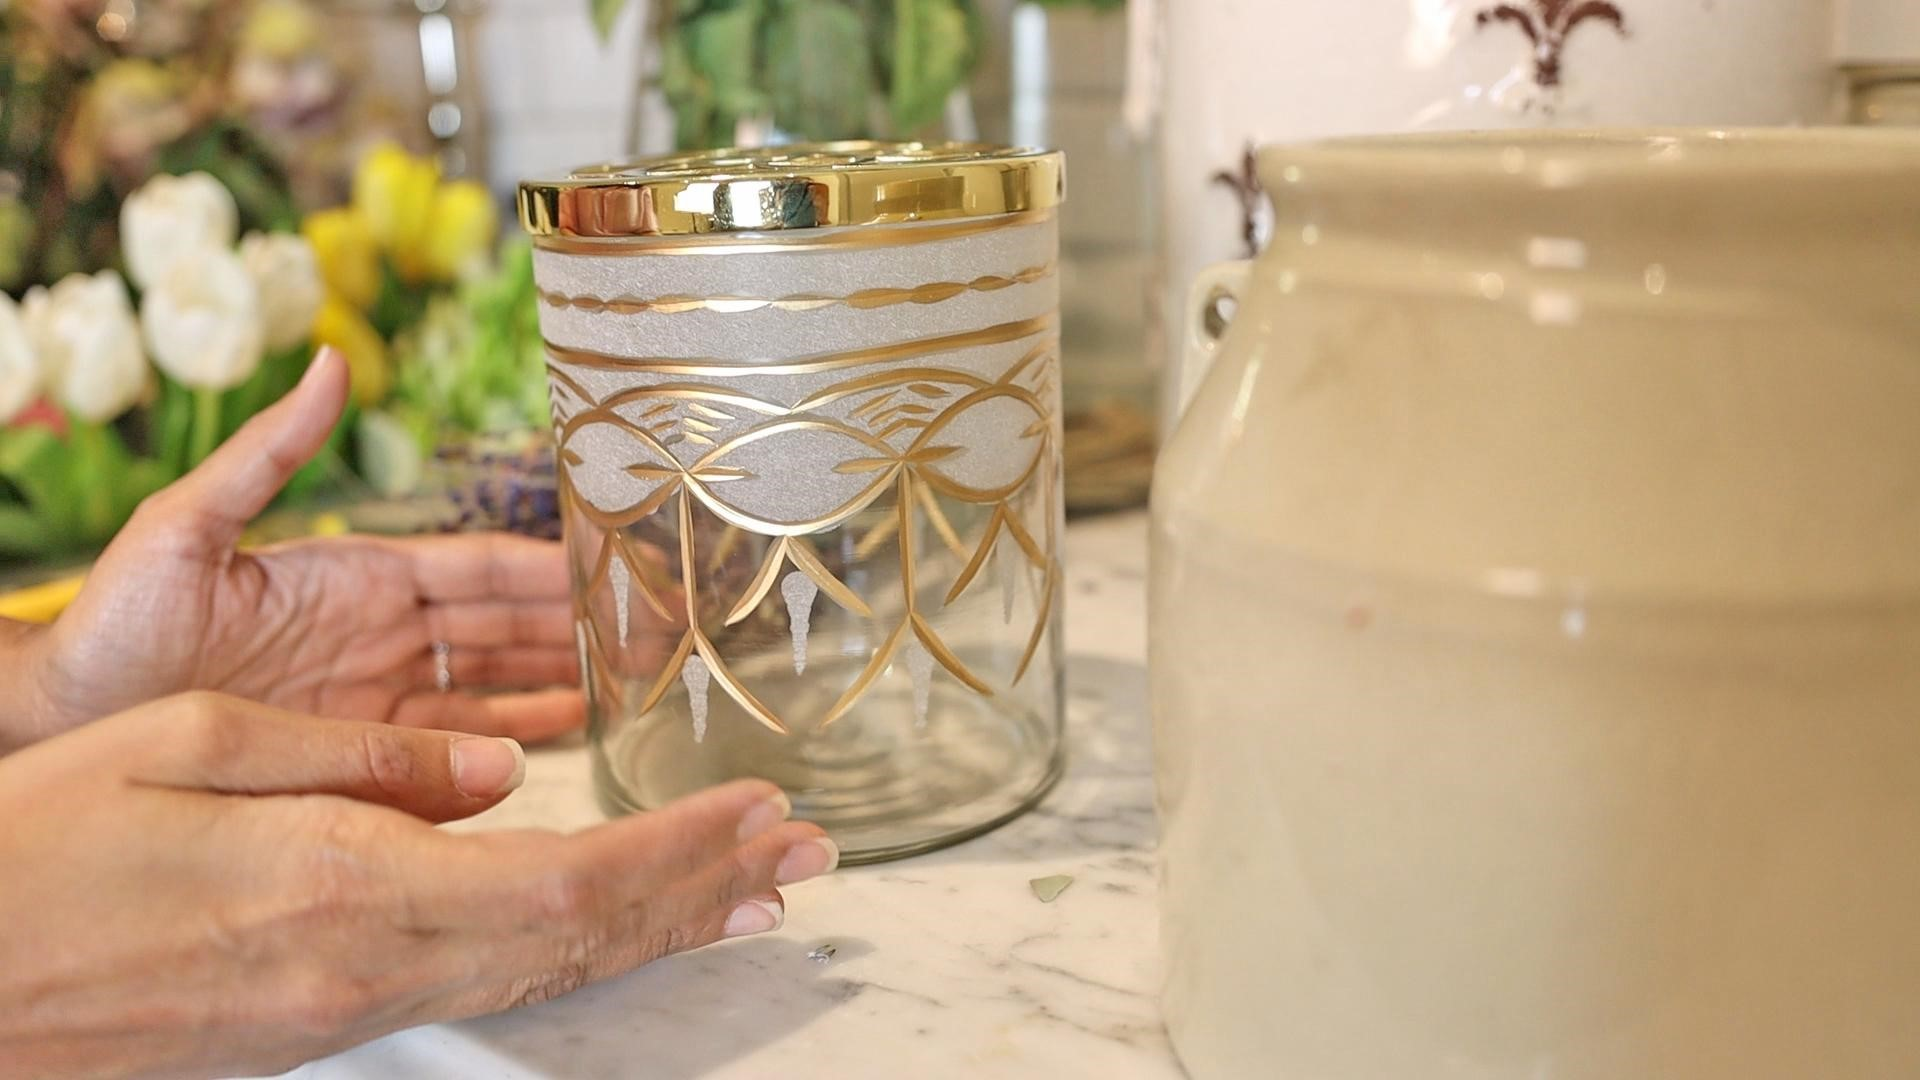 Amitha pointing to medium etched glass cylindrical vase with gold detail and frog flower base